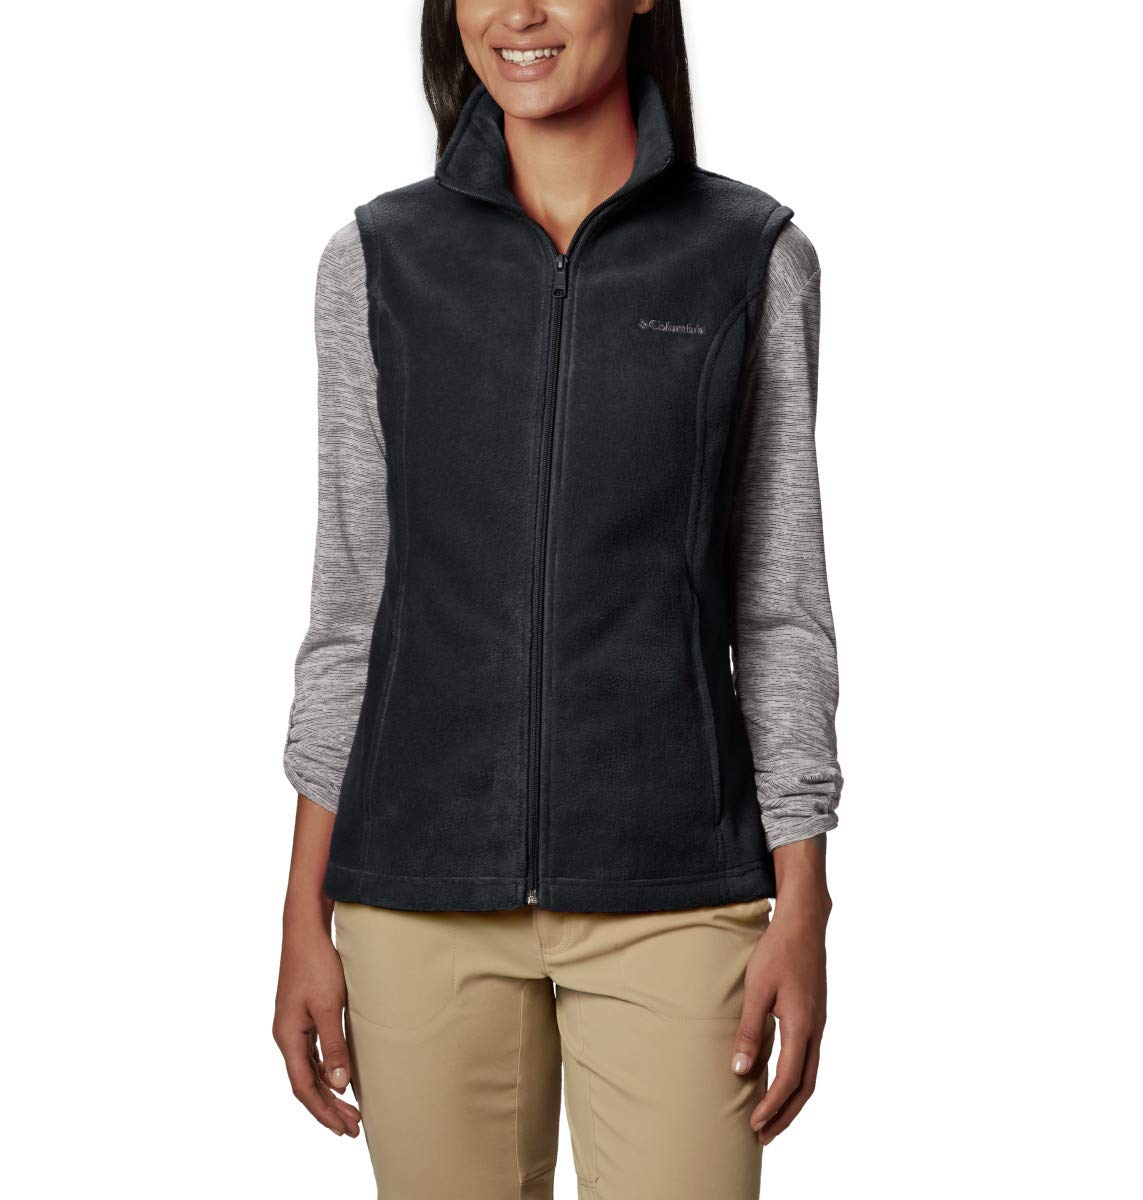 Columbia Women's Plus Size Benton Springs Soft Fleece Vest, Black, 3X by Columbia